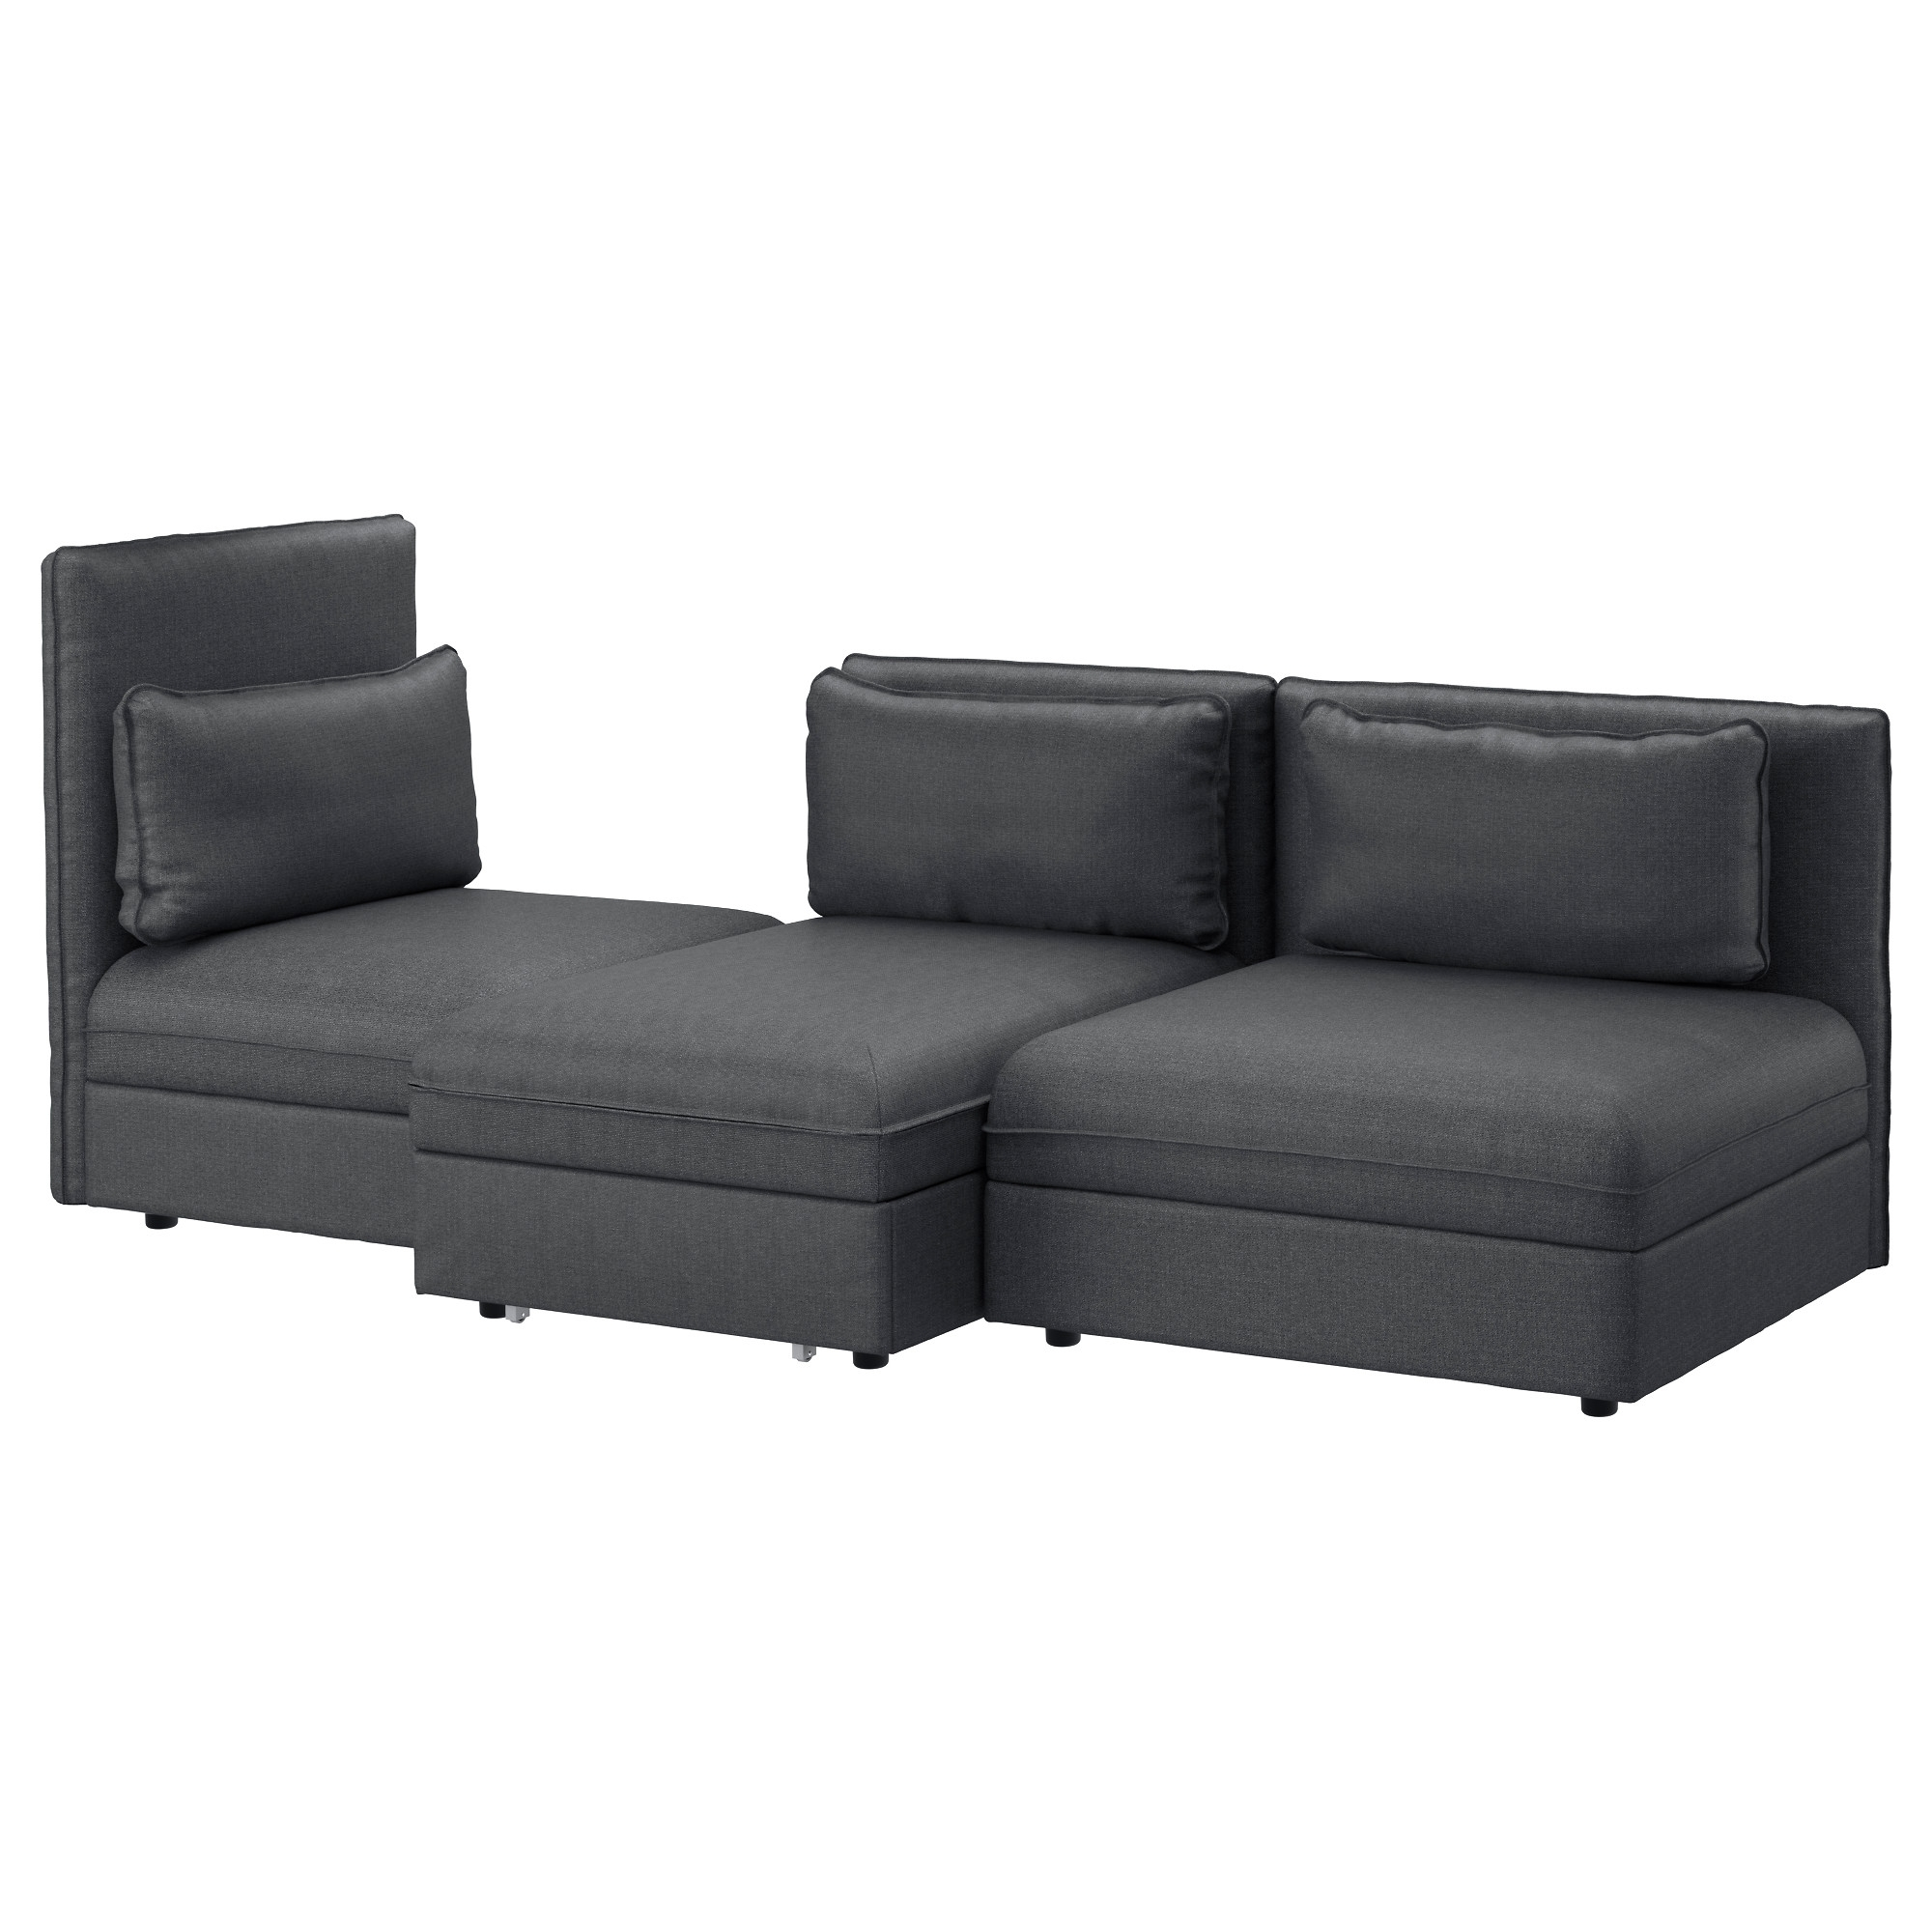 Vallentuna Sleeper Sectional, 3 Seat – Hillared Green – Ikea For Vaughan Sectional Sofas (View 8 of 10)